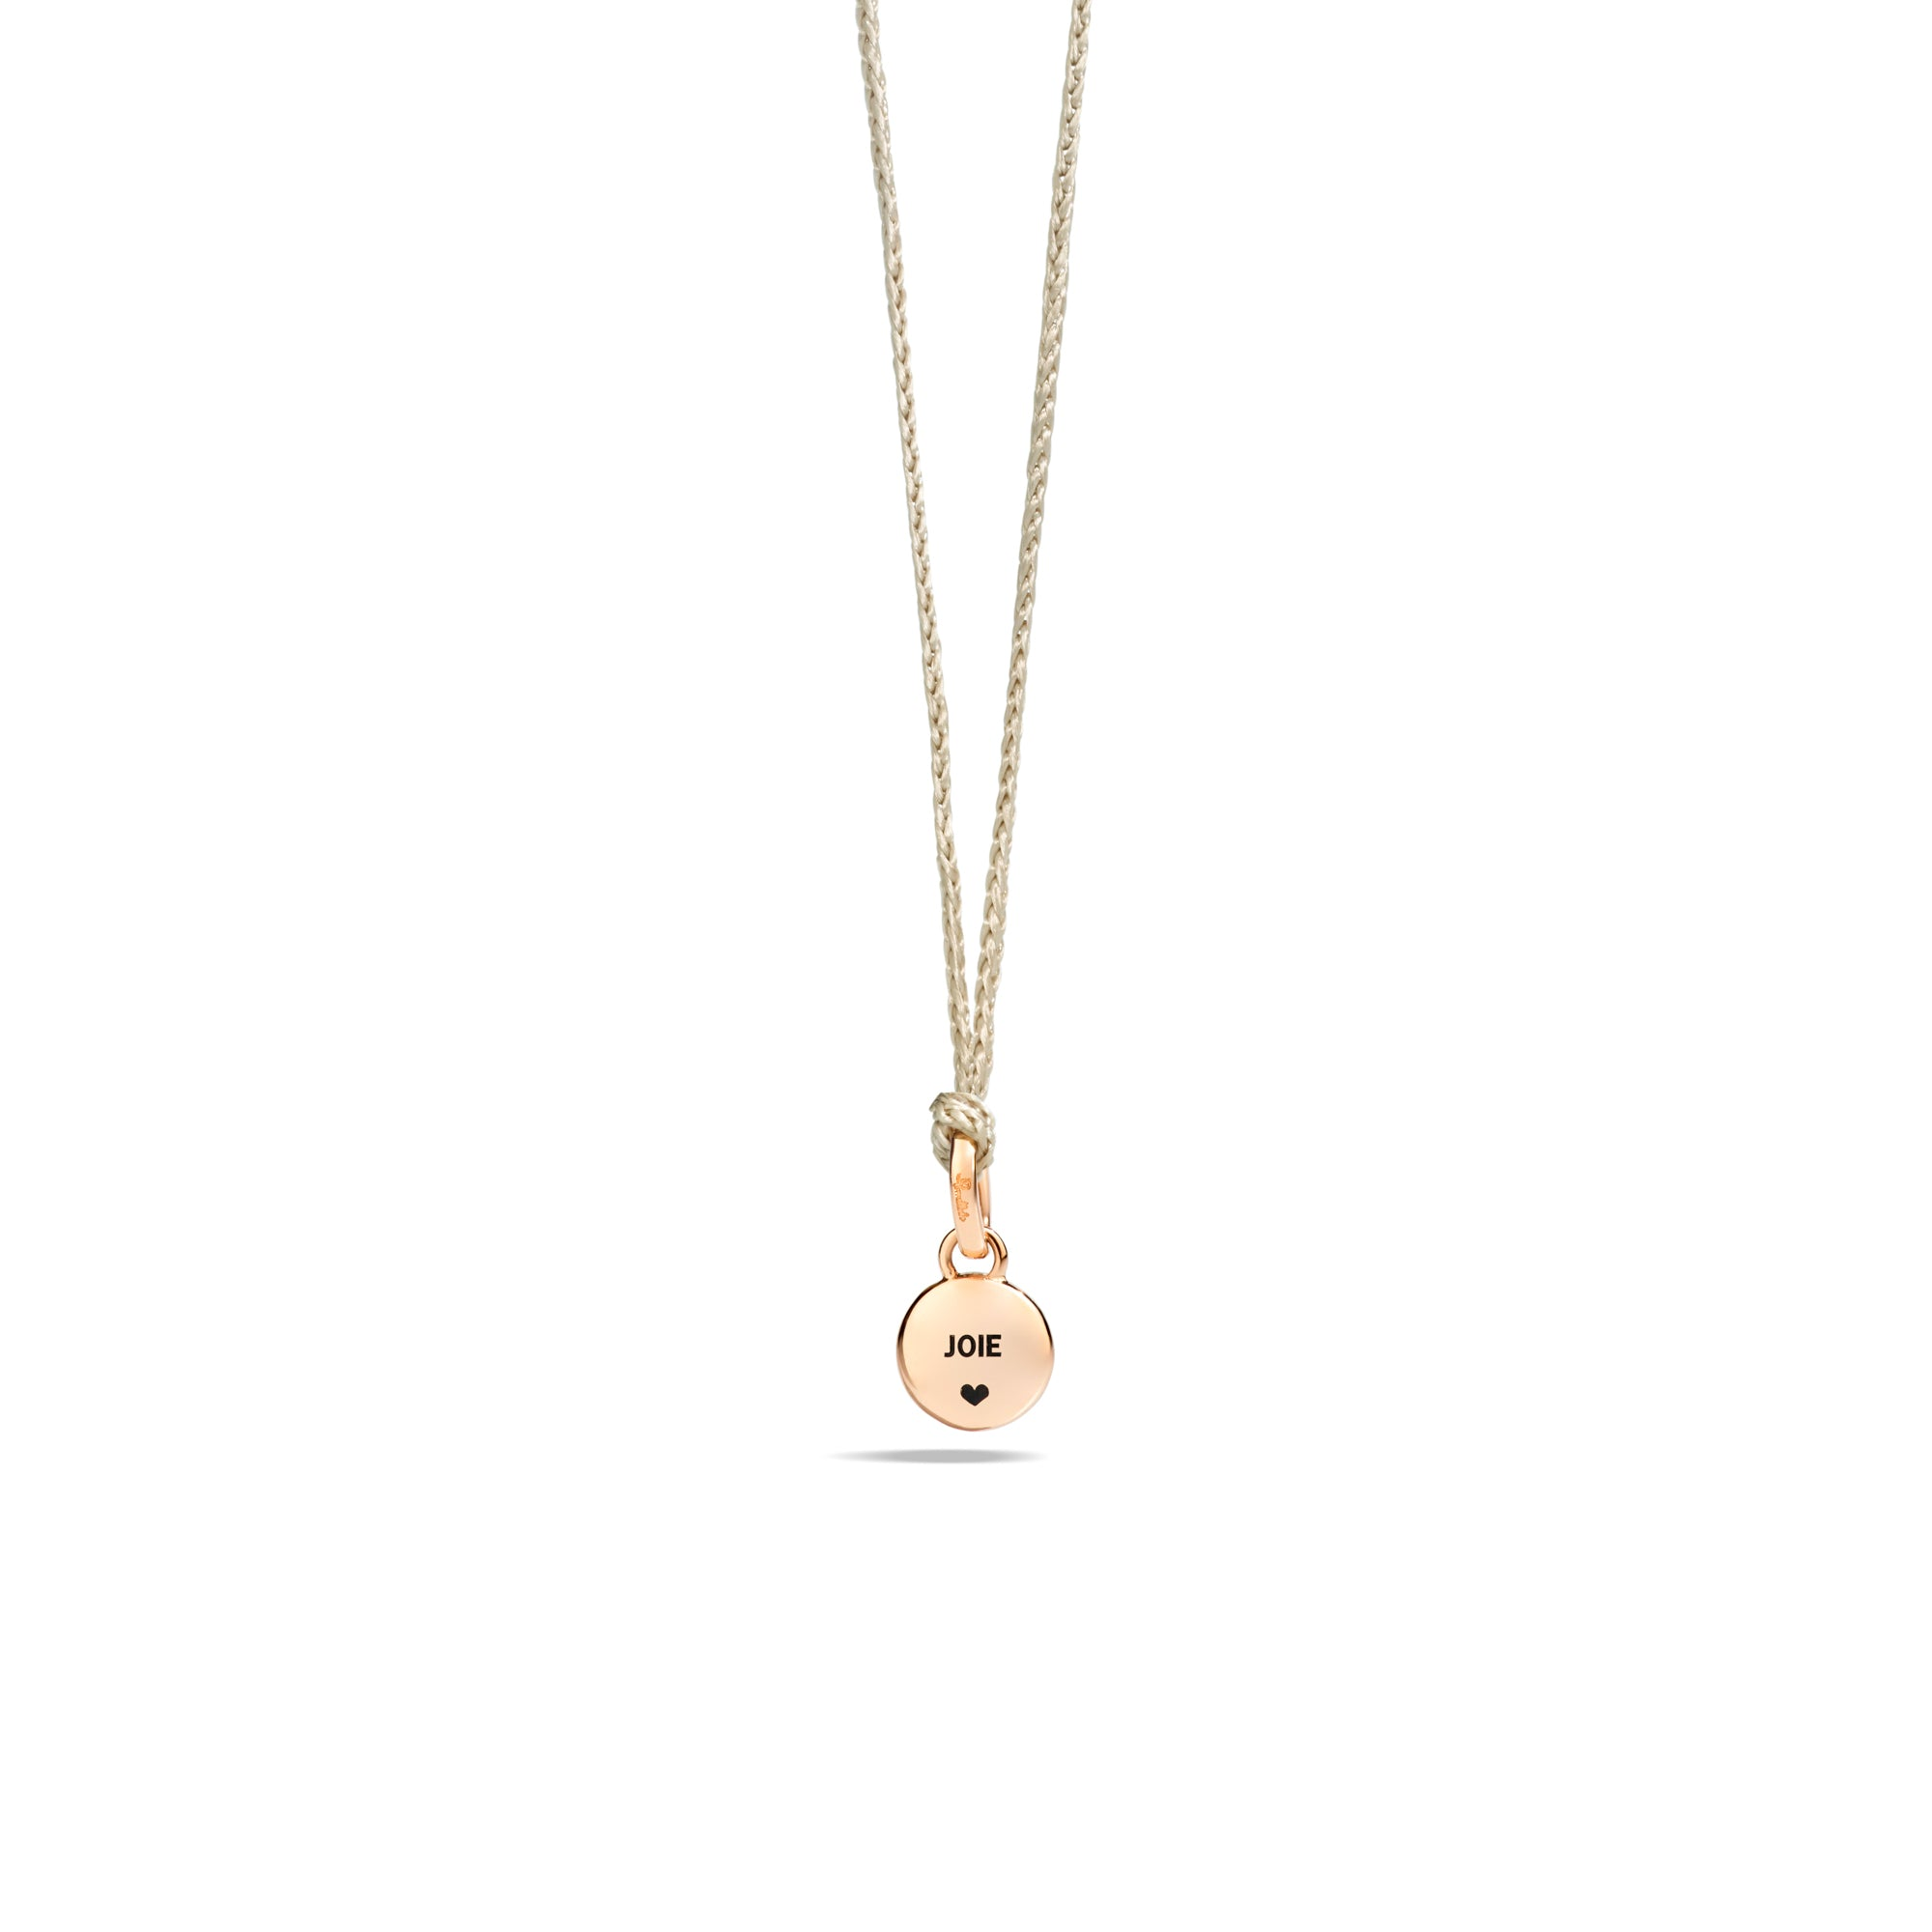 M'ama non M'ama Pendant in 18k Rose Gold with Moonstone and Diamonds - Orsini Jewellers NZ